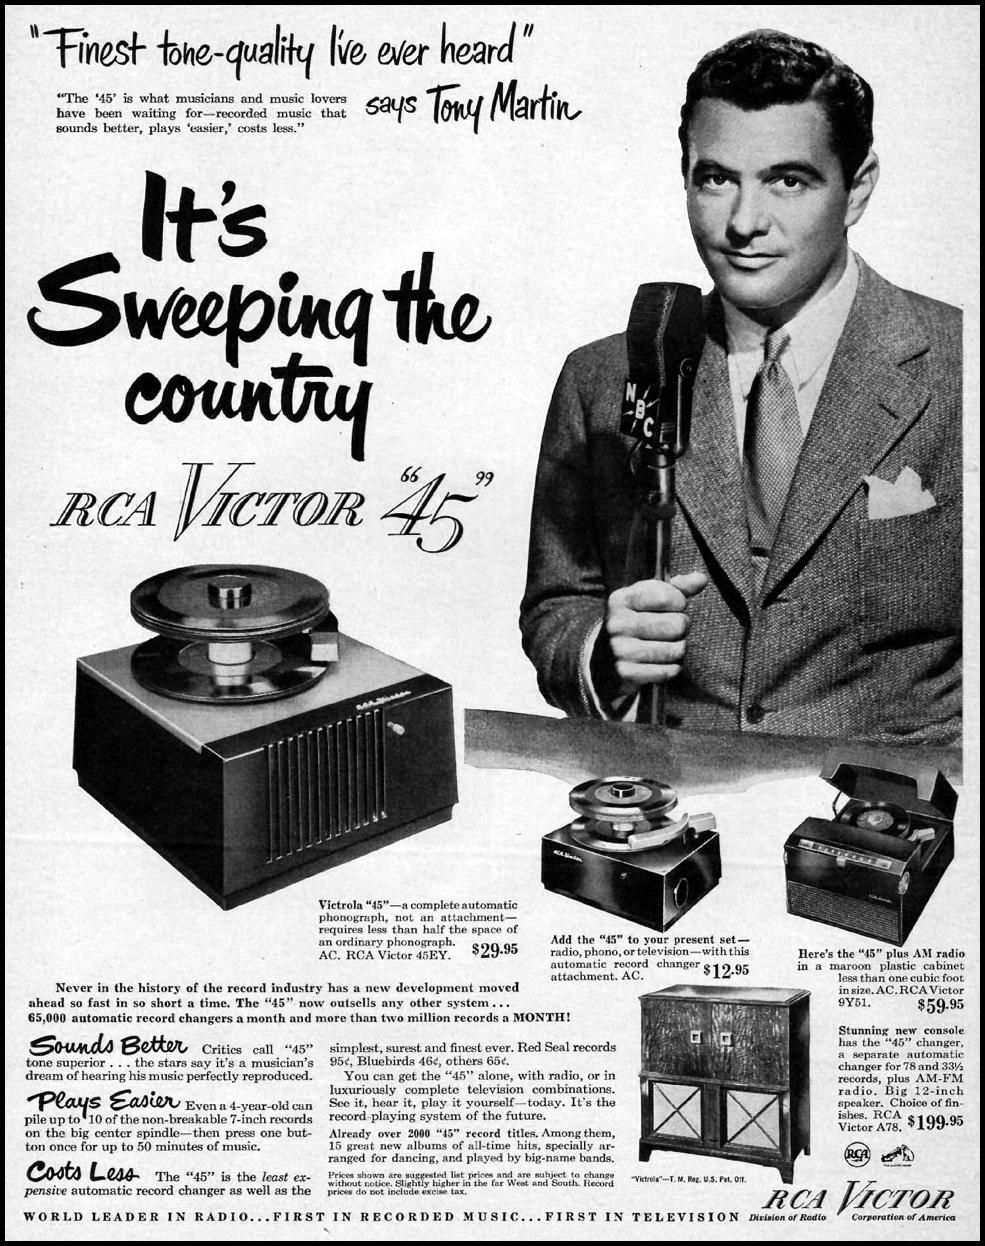 Rca Victor 45 Rpm Records Ad From 1950 For The Love Of